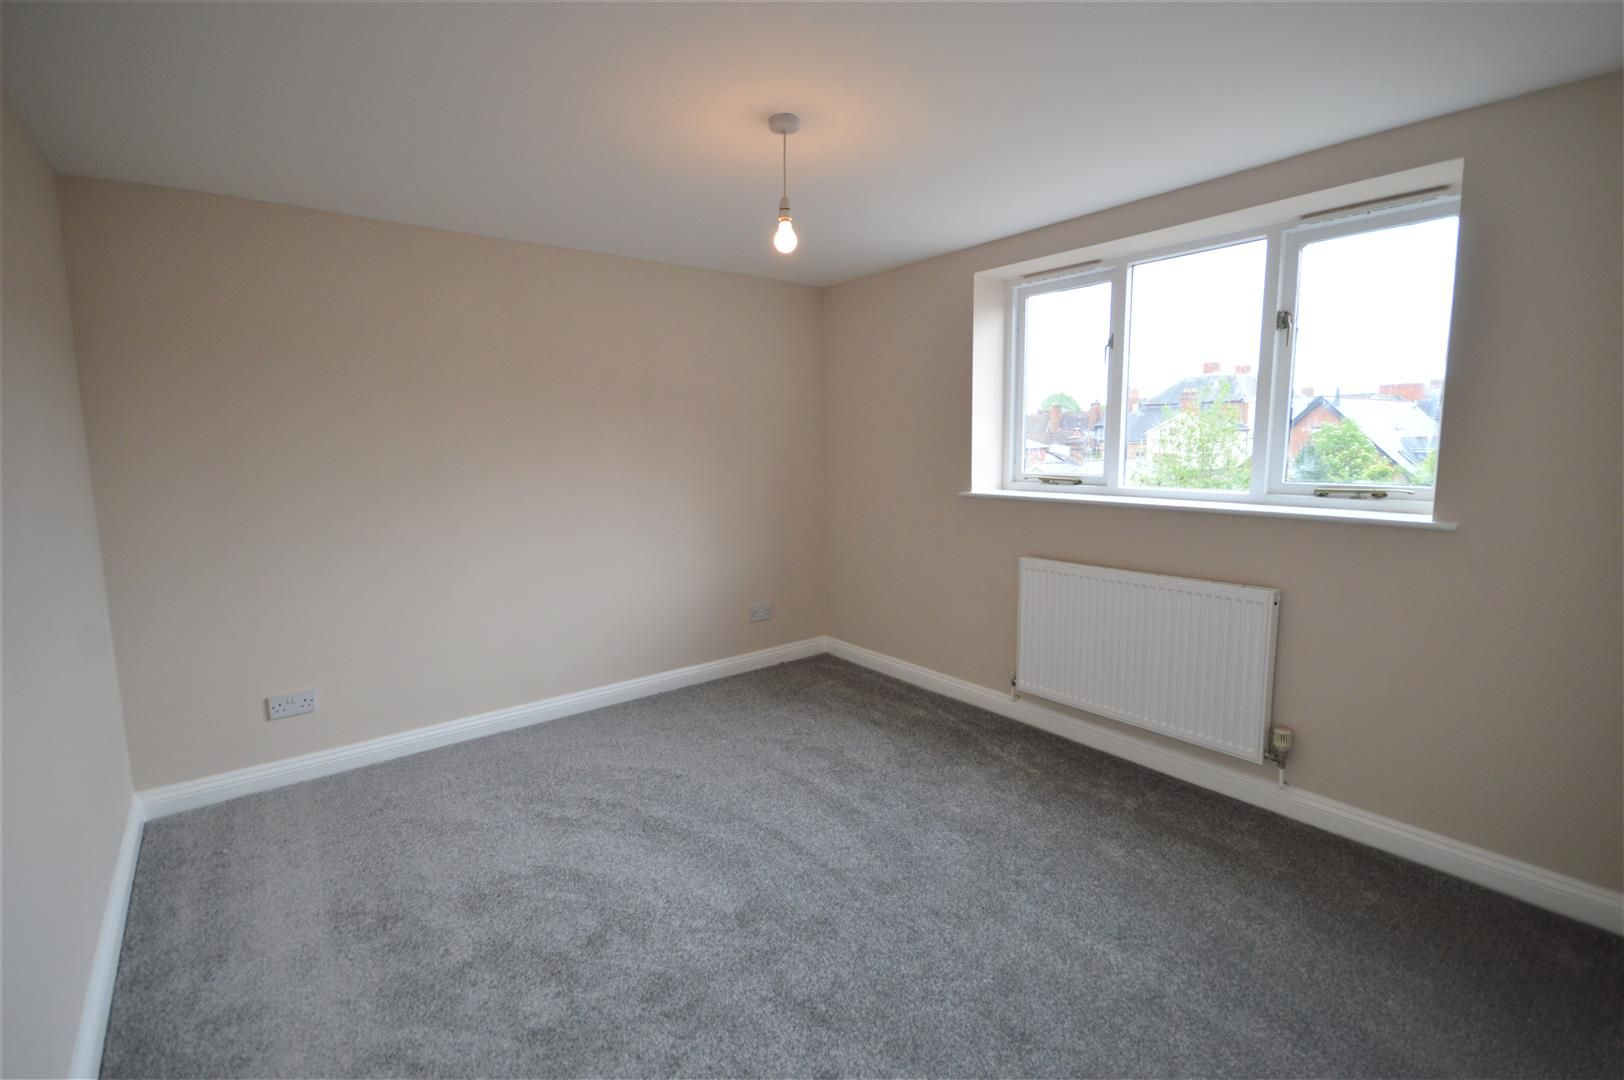 2 bed maisonette to rent in Leominster 4